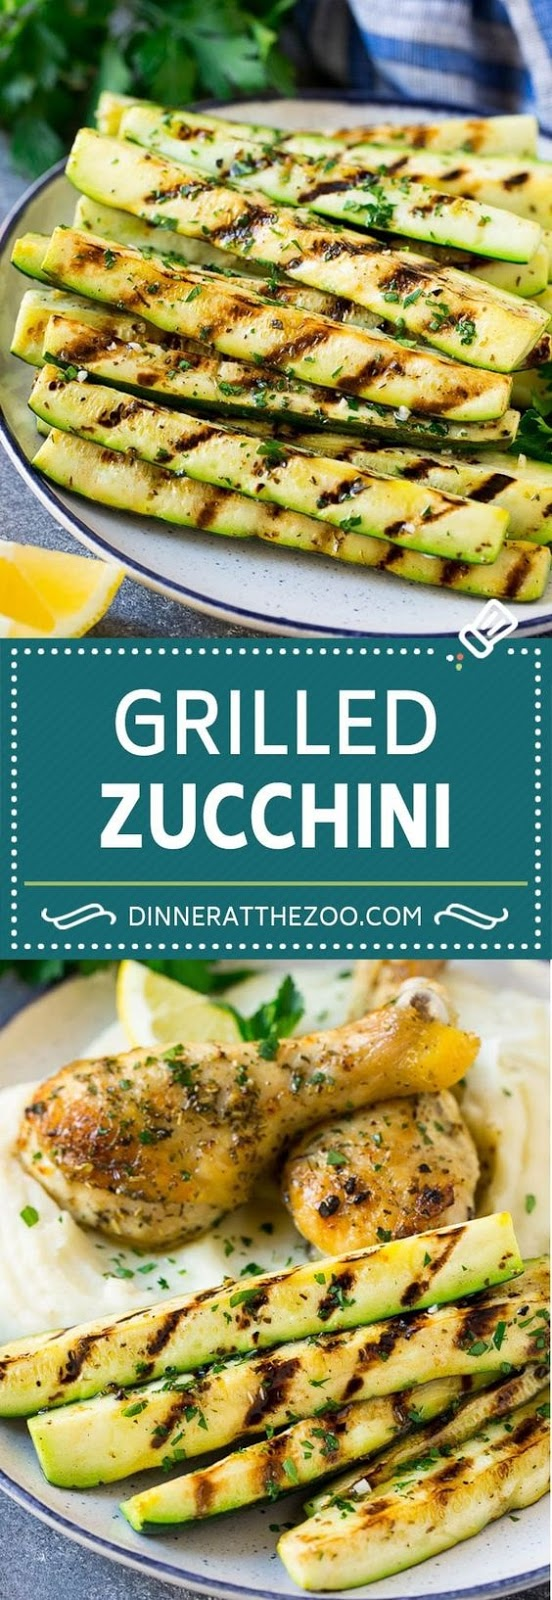 Grilled Zucchini With Garlic And Herbs